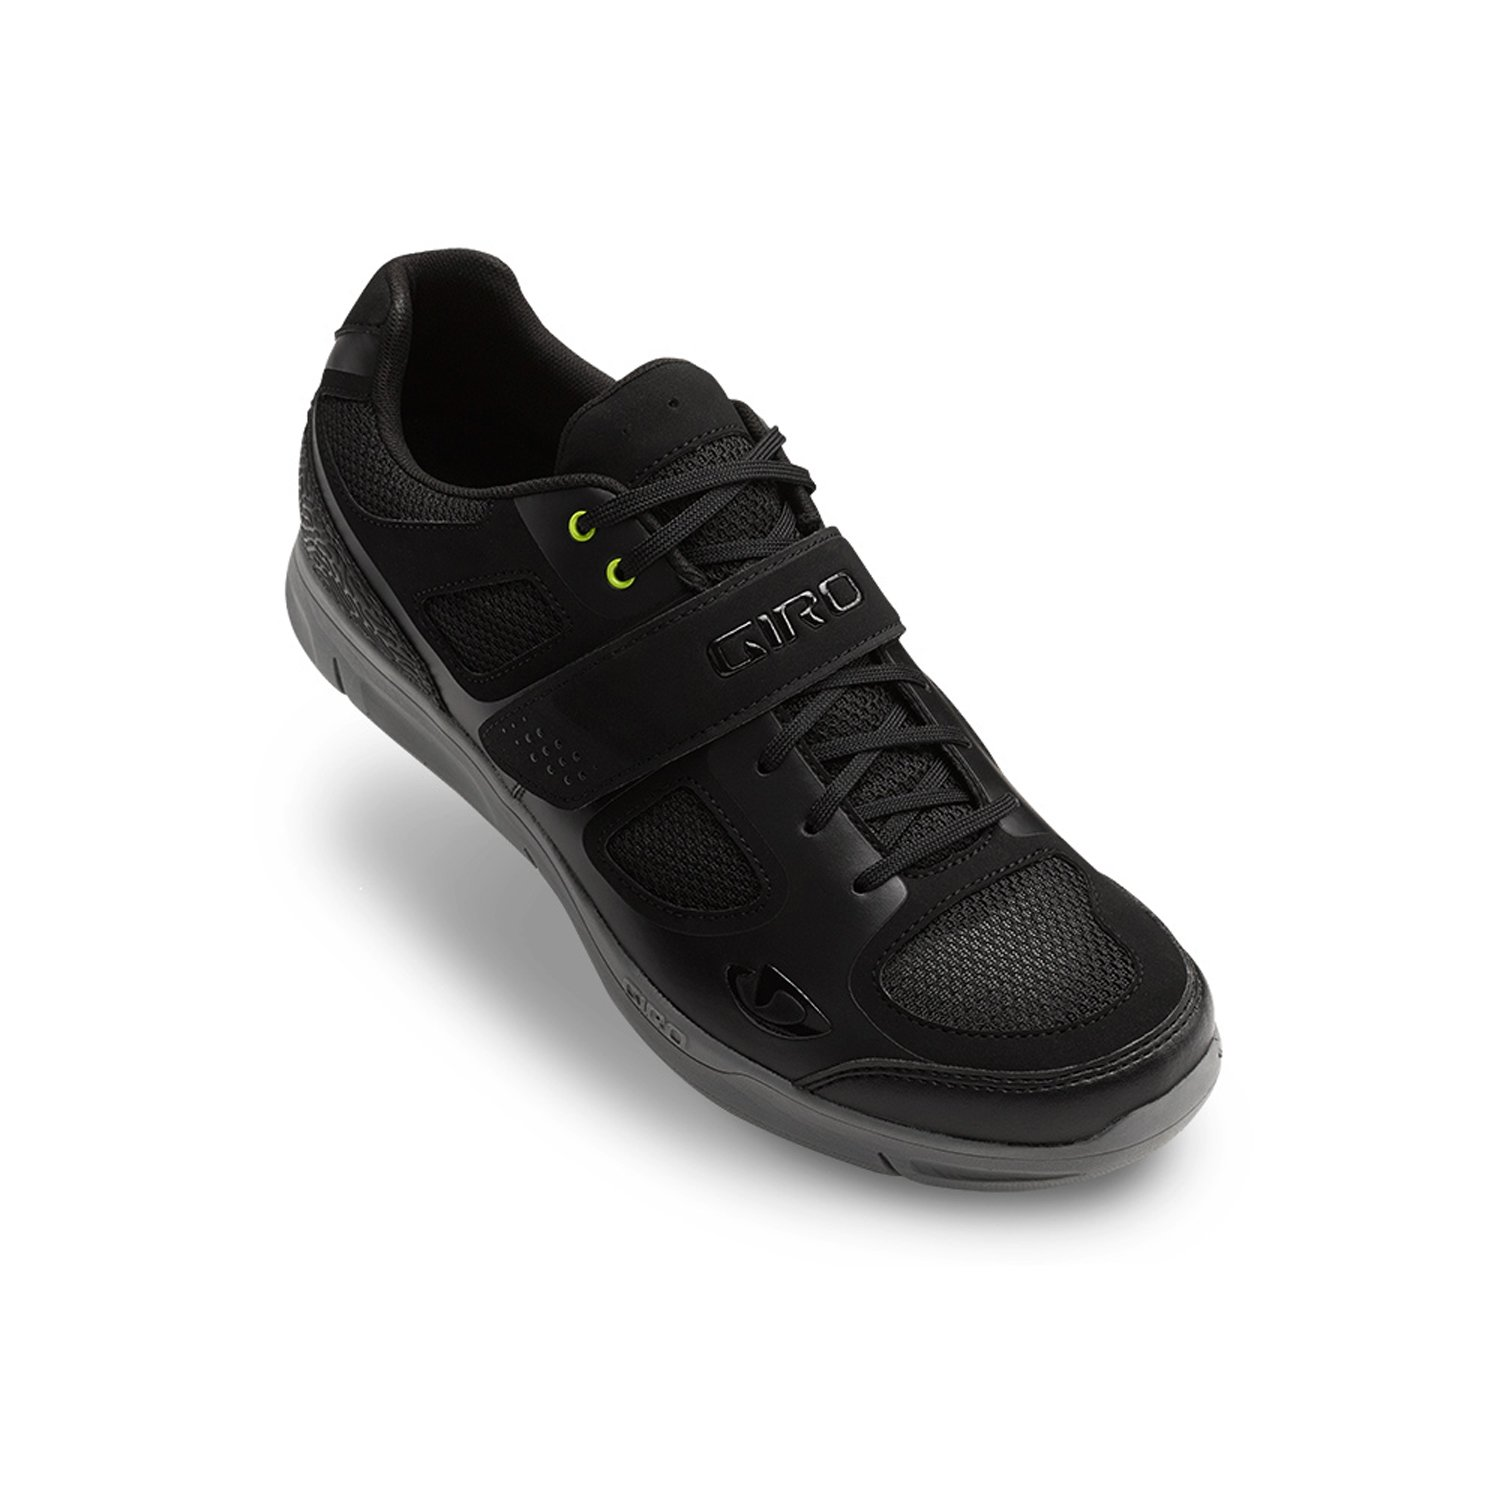 Giro Grynd Shoe - Men's Black Squiggle 46